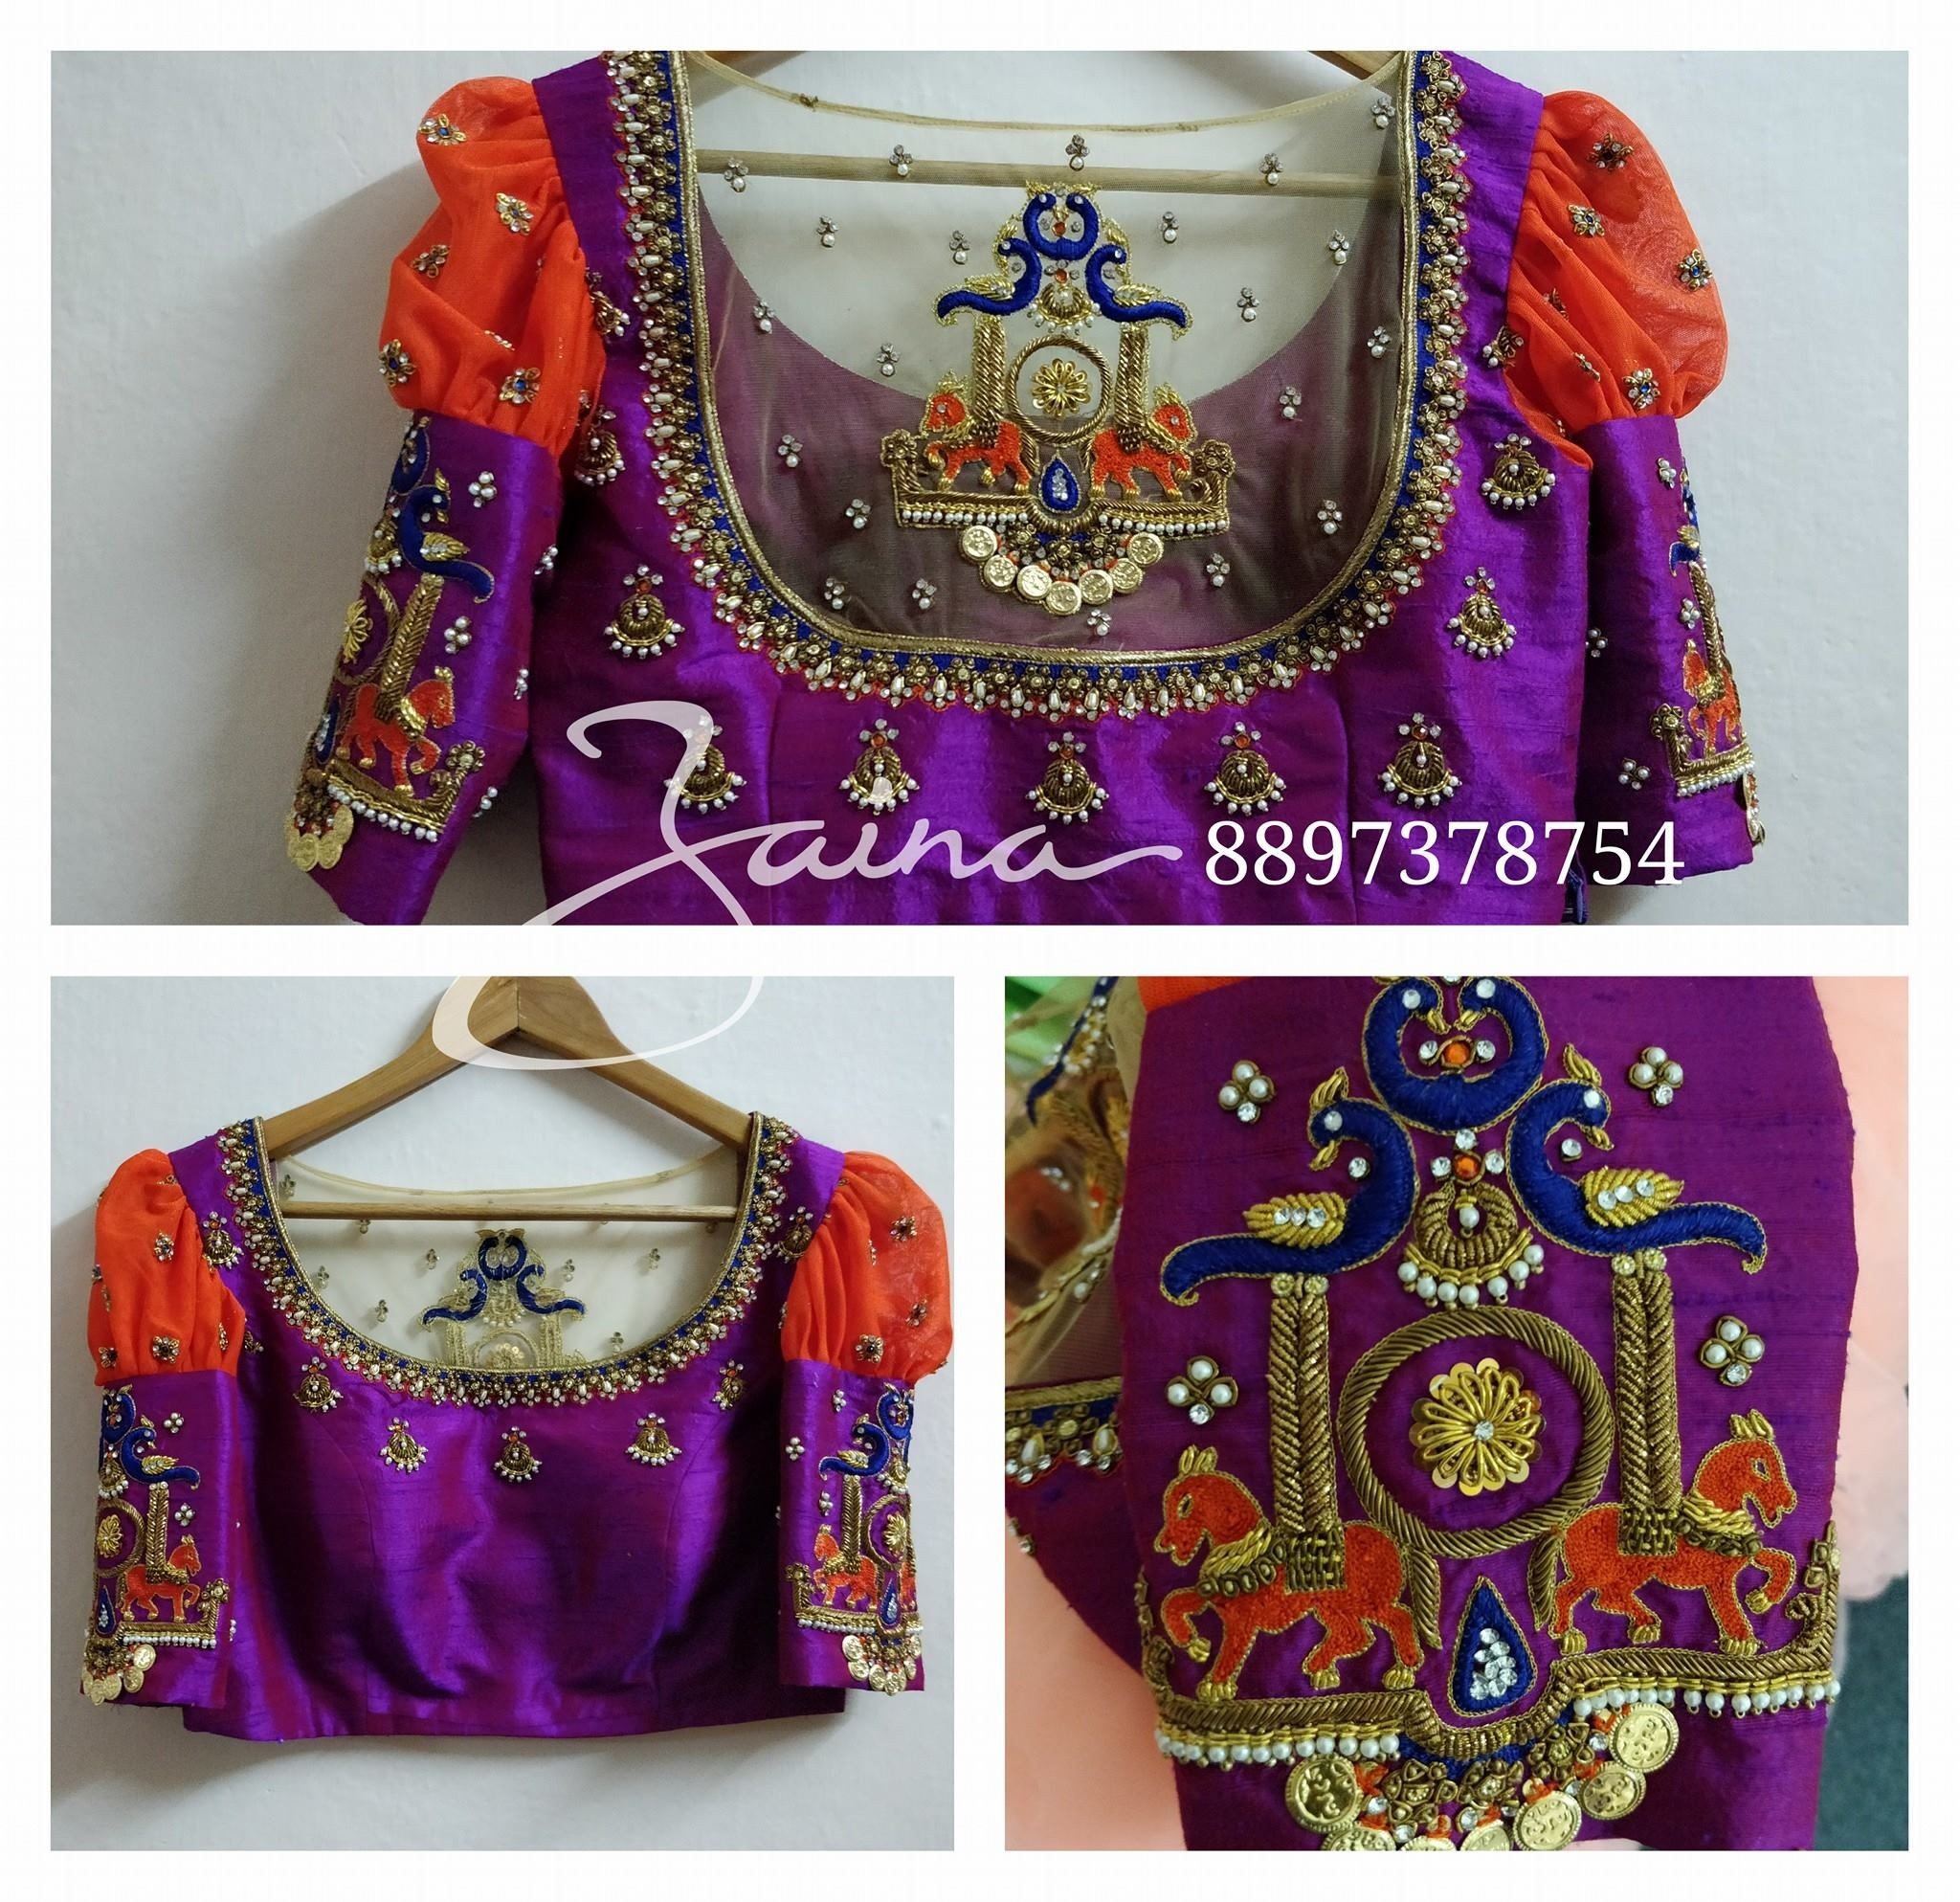 d387b1084c6c9a Beautiful purple color designer blouse with chaandbali design hand  embroidery thread and bead work. Horse and Peacock design hand embroidery  thread work on ...